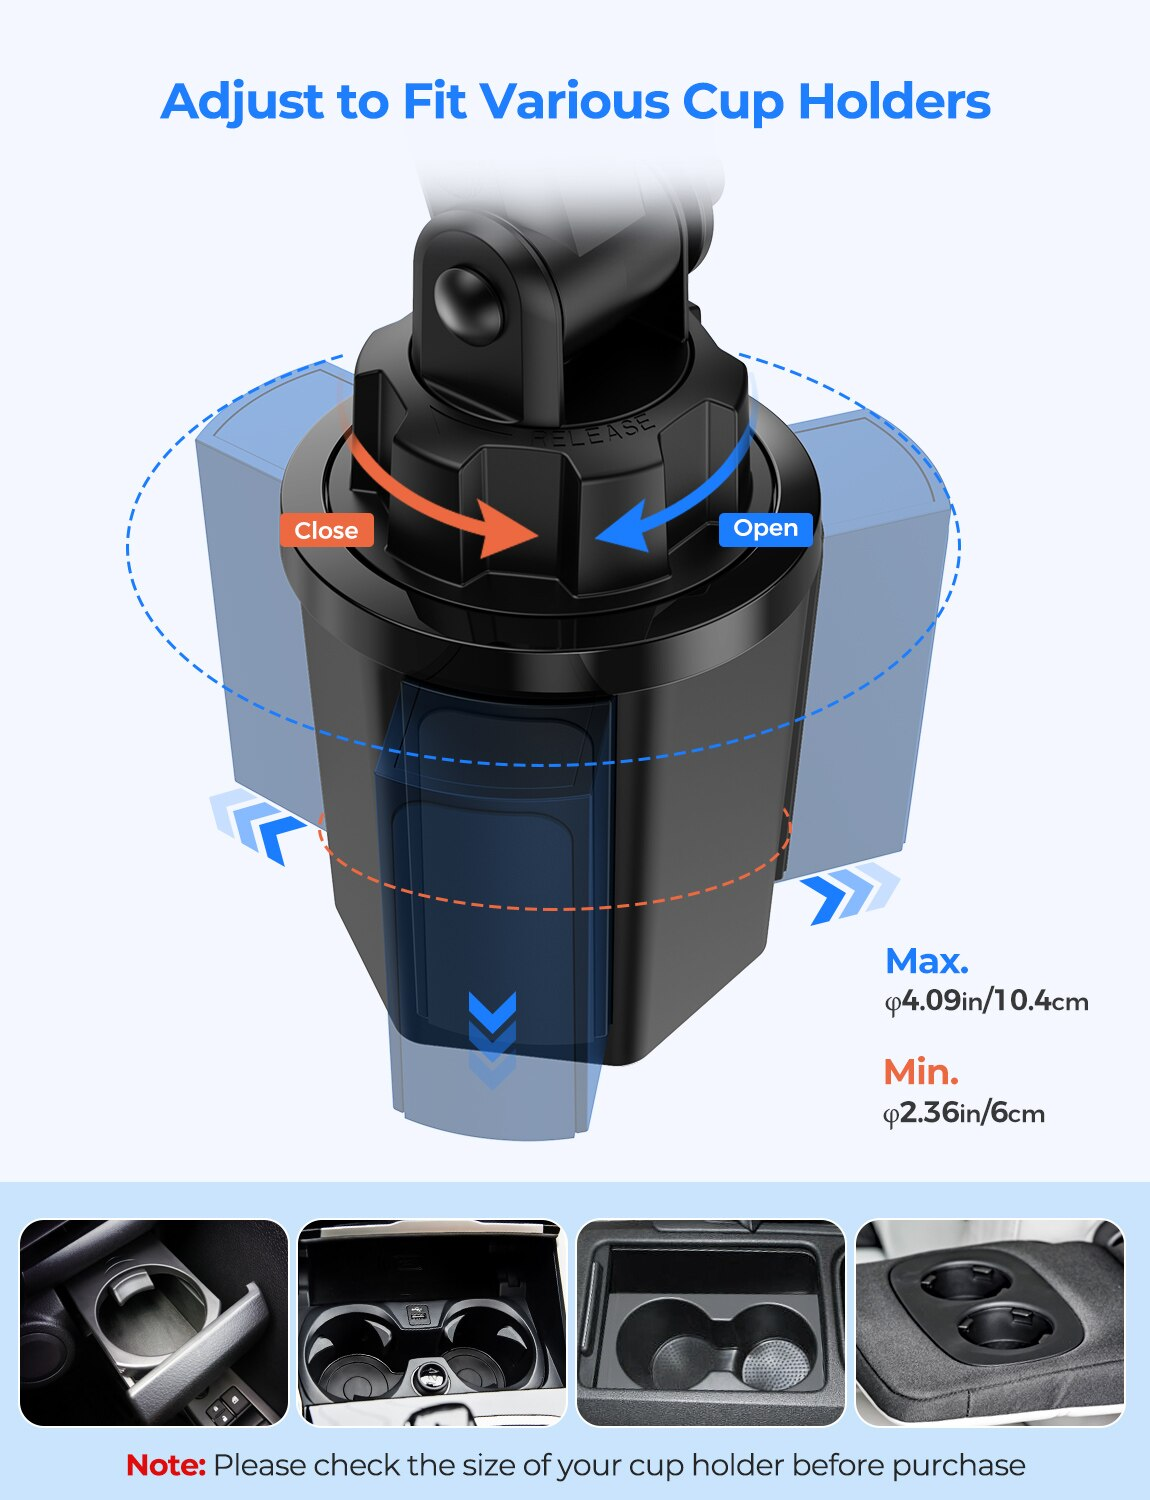 H89d526e1c1f040ada62c43b9d66c6977X - MPOW CA158 Phone Mount Adjustable Cup Holder Car Mount with Long Gooseneck 360 Degrees Rotation Compatible with iPhone Galaxy